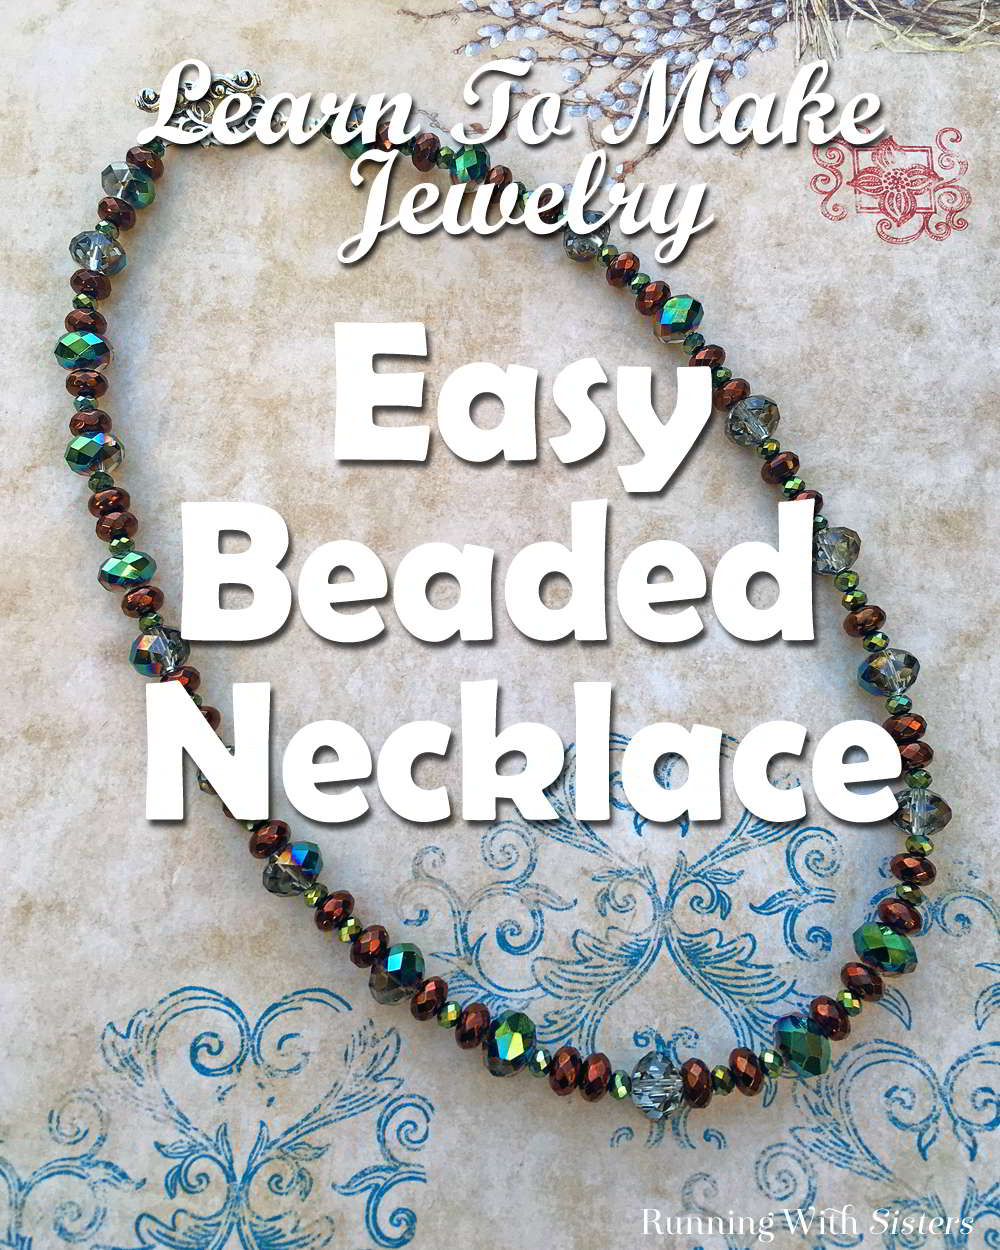 Make Your Own Necklaces And Jewelry At Home: Learn To Make Jewelry: Beautiful & Easy Beaded Necklace